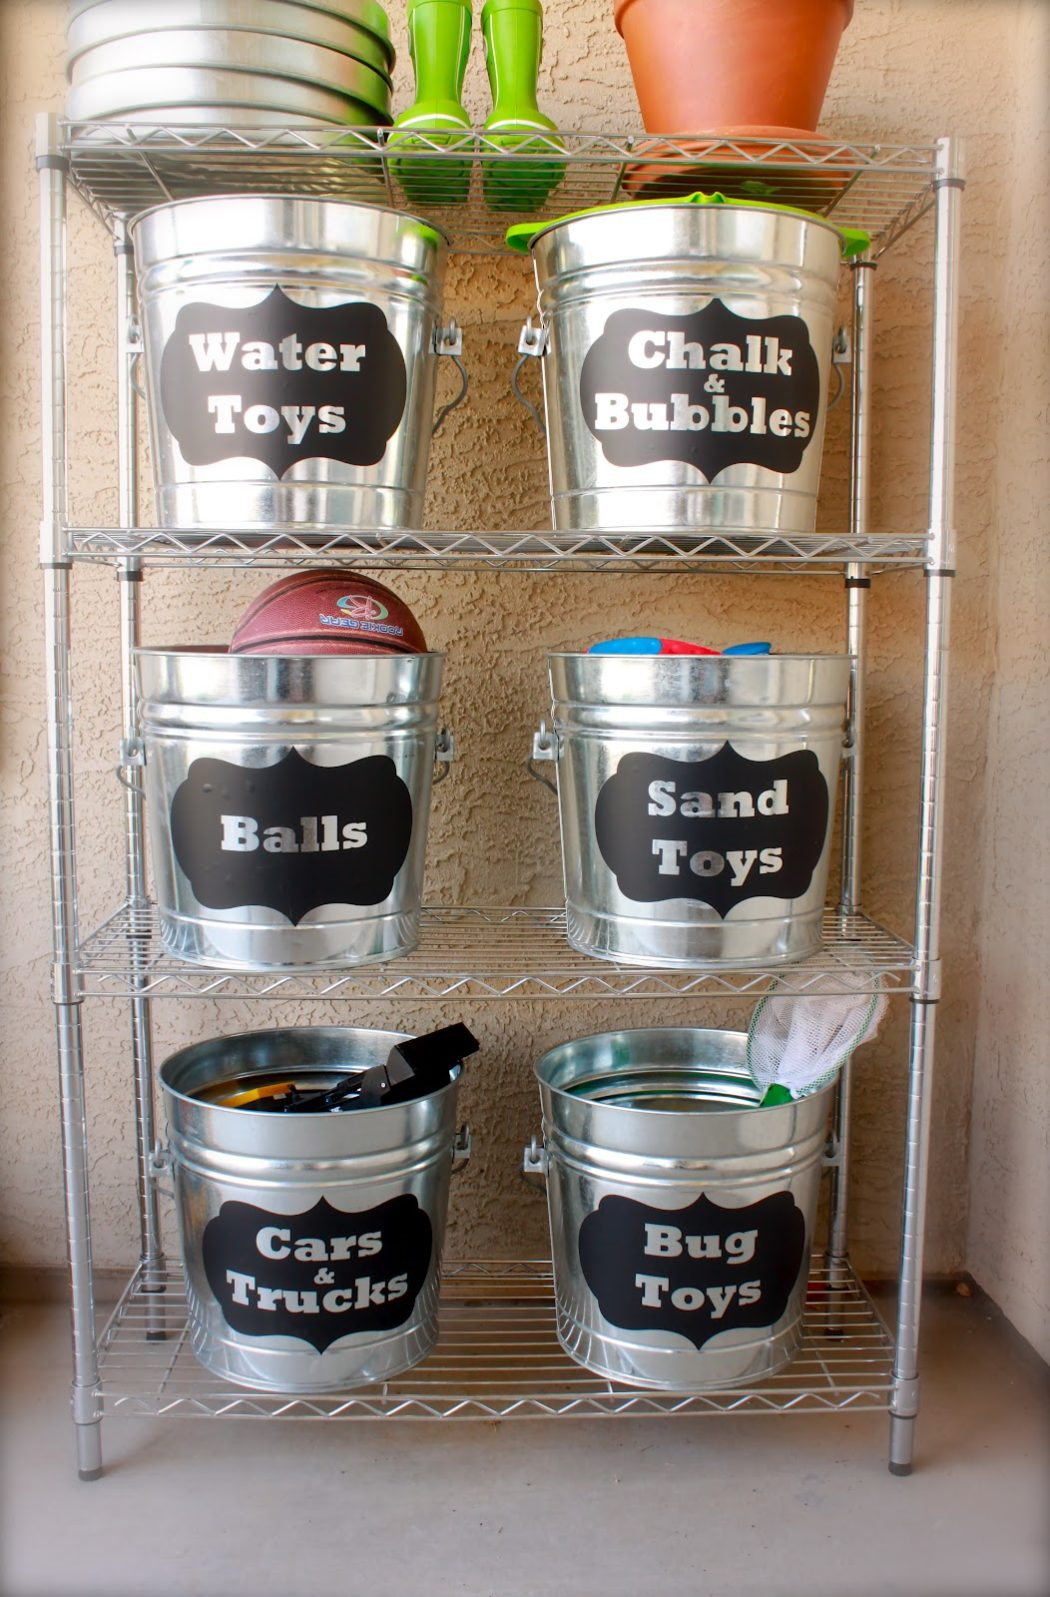 Buckets for toys garage organization